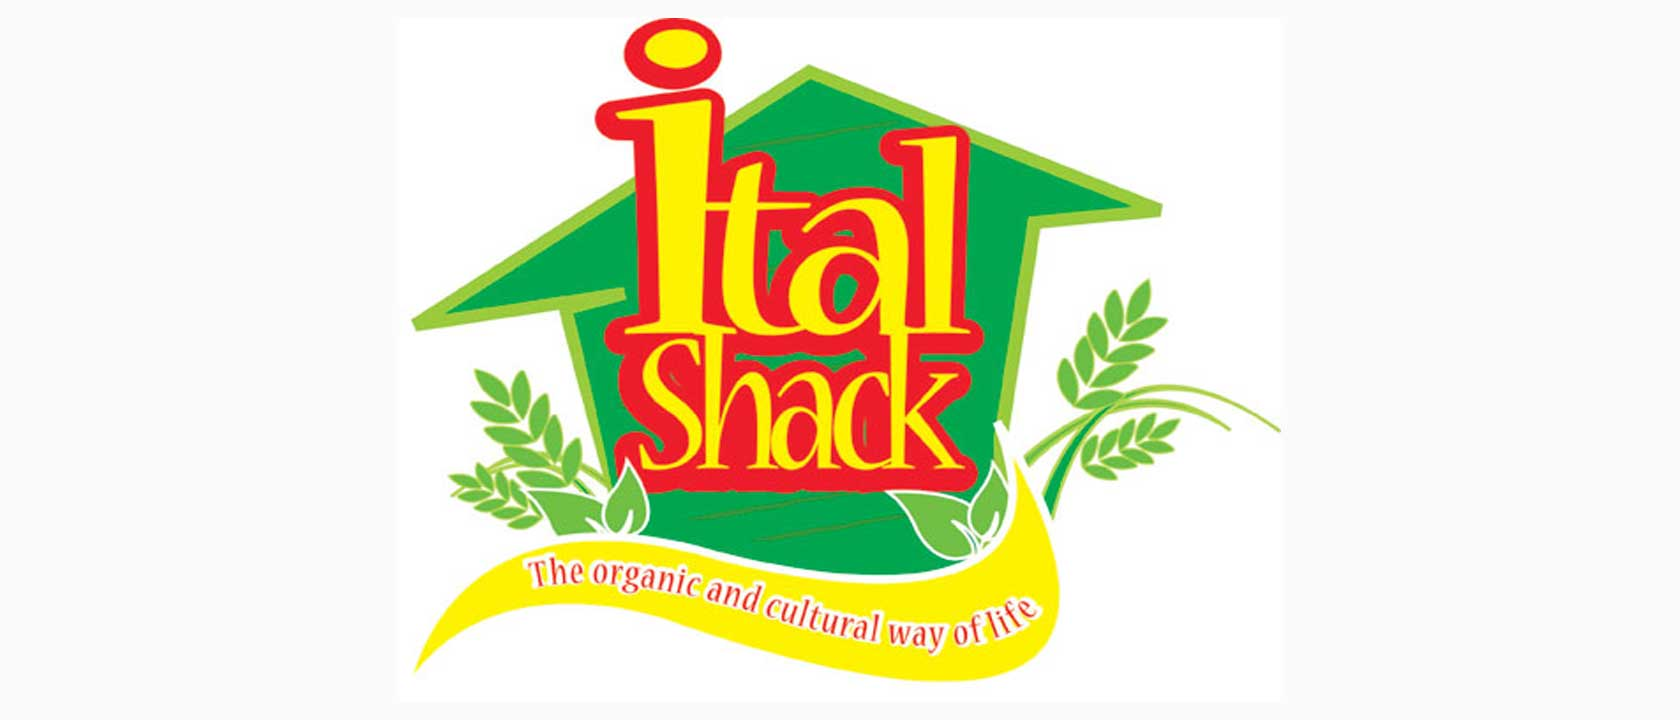 Restaurant, The Ital Shack